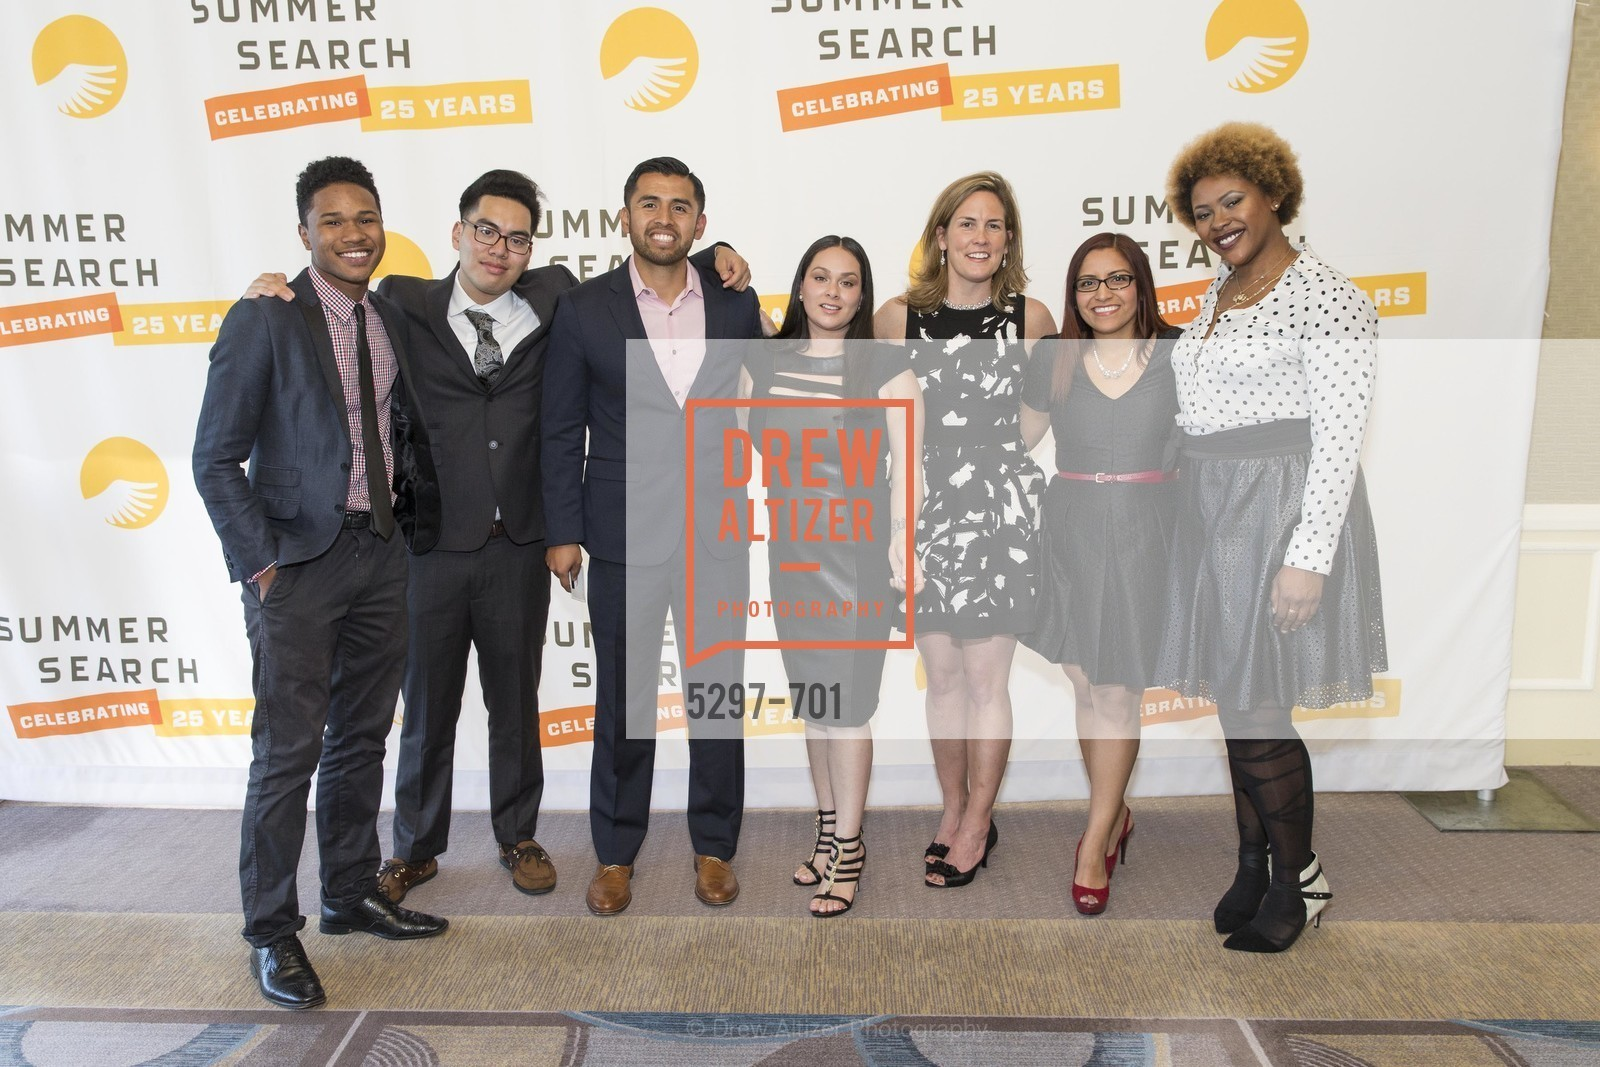 Ibrahim Balde, Josh Dela Cruz, Alejandro Nuno, Marcela Azucar, Lindsay Hower, Ana Baires Mira, Savannah Hudson, SUMMER SEARCH San Francisco 25th Anniversary, US, May 6th, 2015,Drew Altizer, Drew Altizer Photography, full-service agency, private events, San Francisco photographer, photographer california